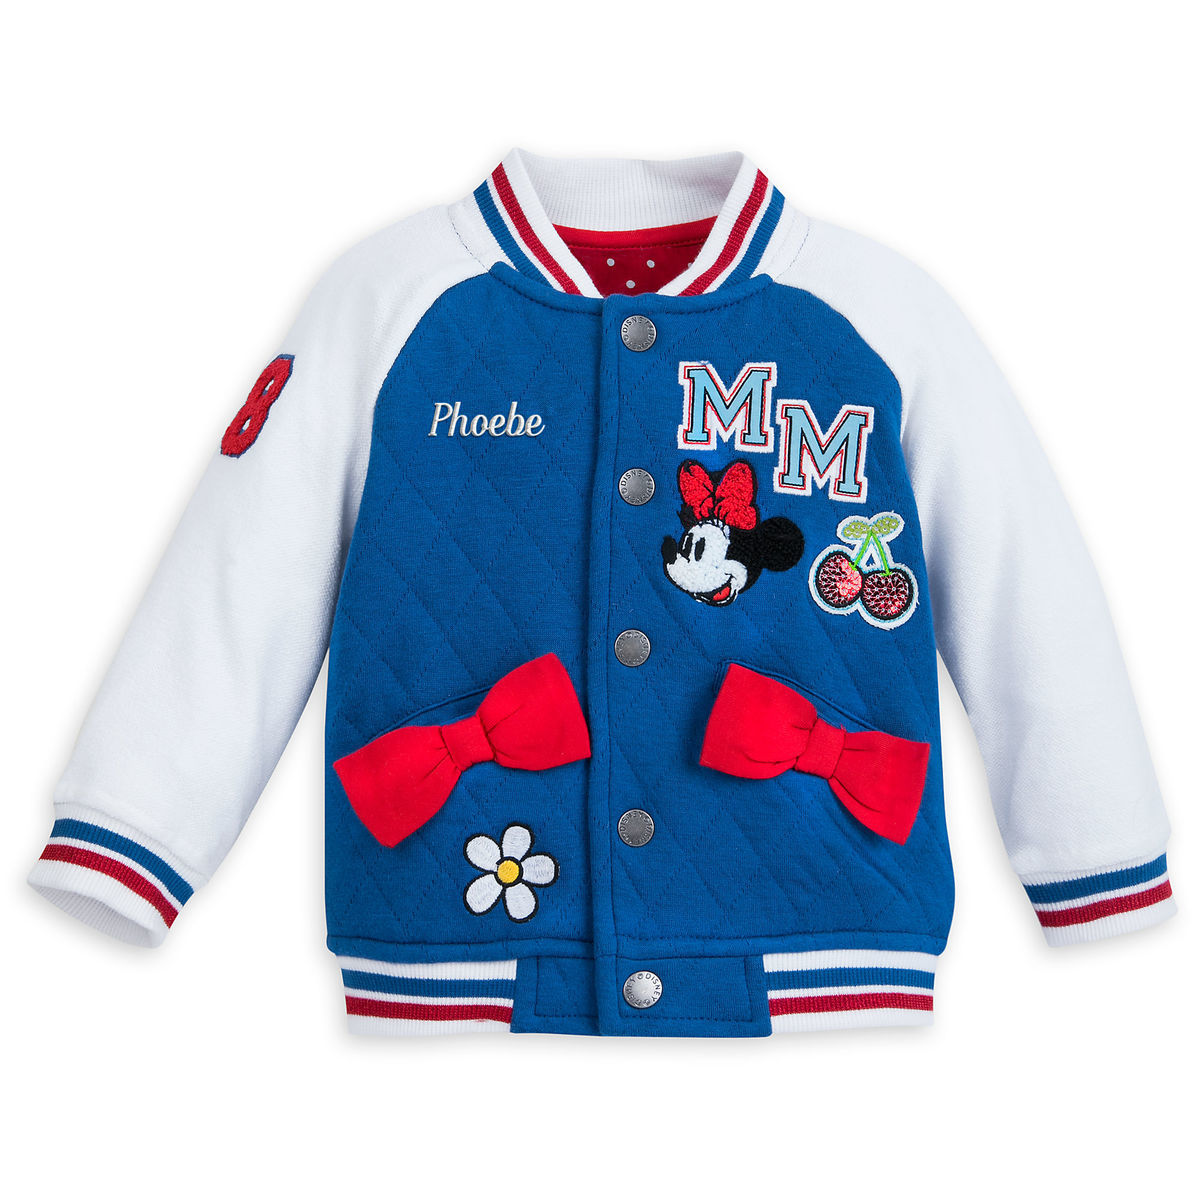 e019abdc2 Minnie Mouse Varsity Jacket for Baby - Personalizable